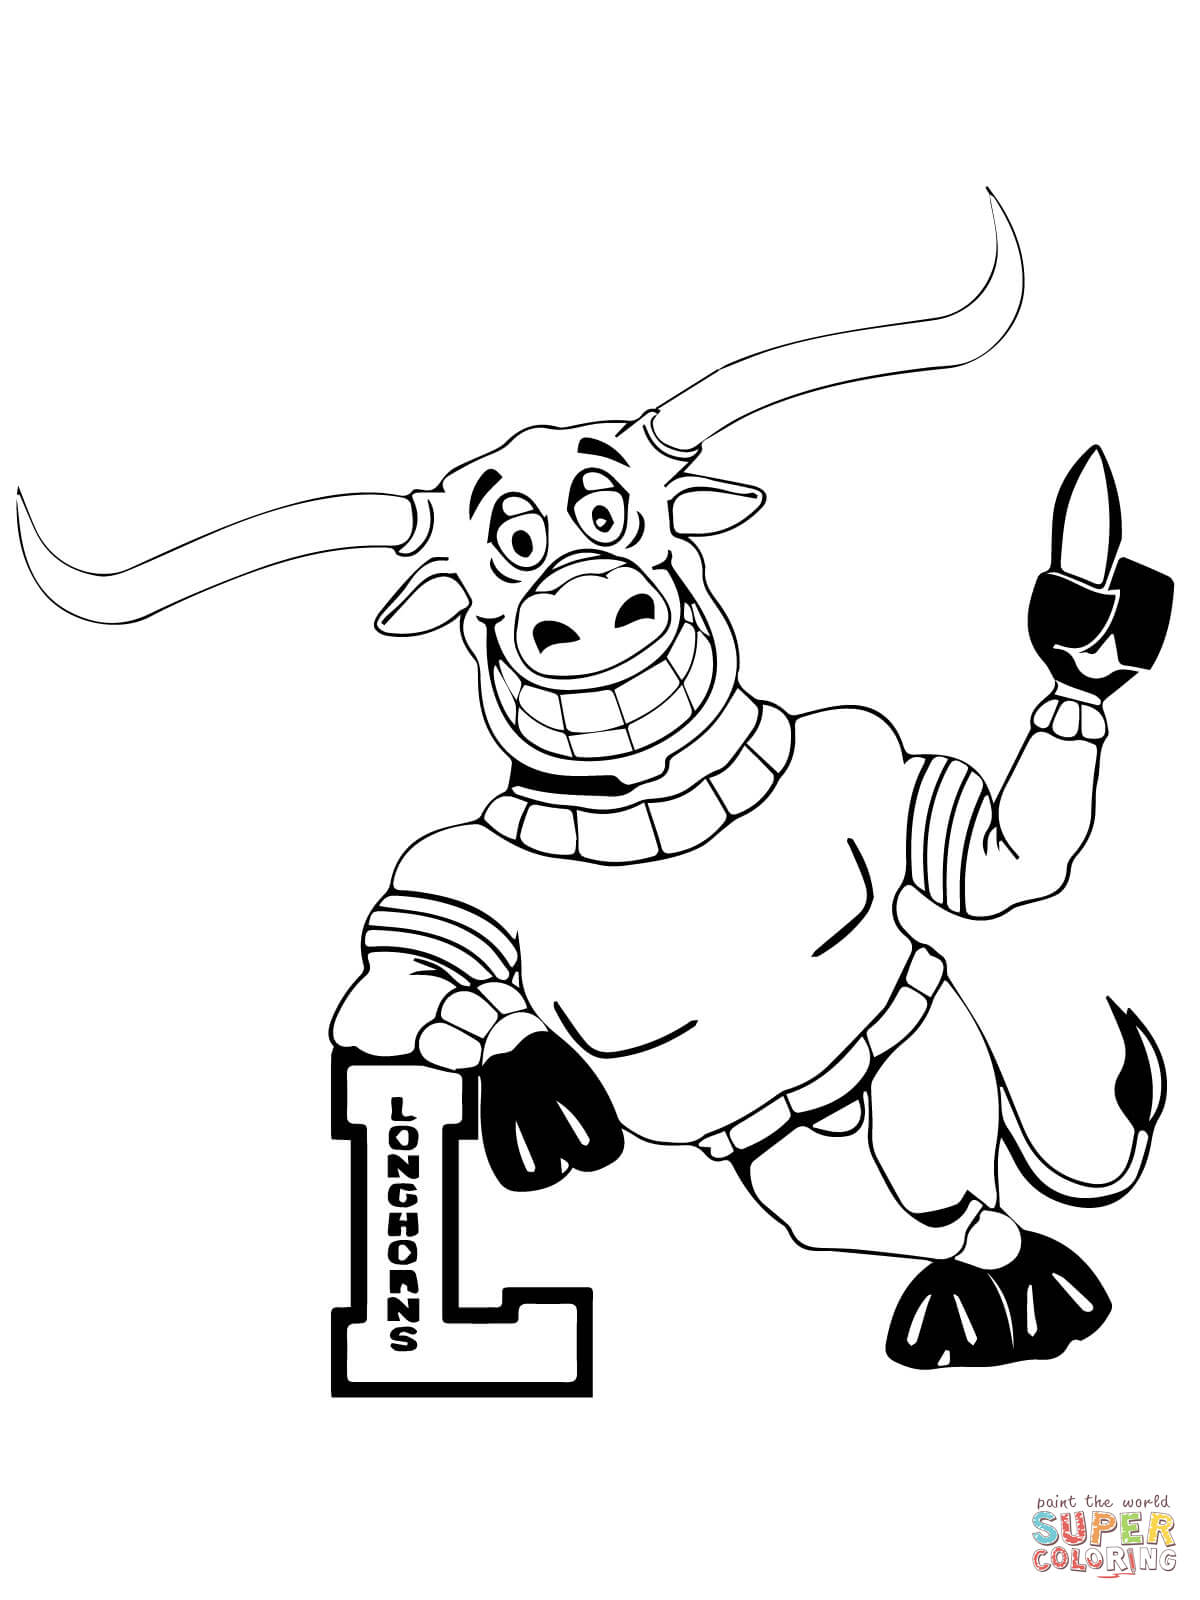 1200x1600 Ut Longhorn Mascot Coloring Page And Super Bowl Sheets